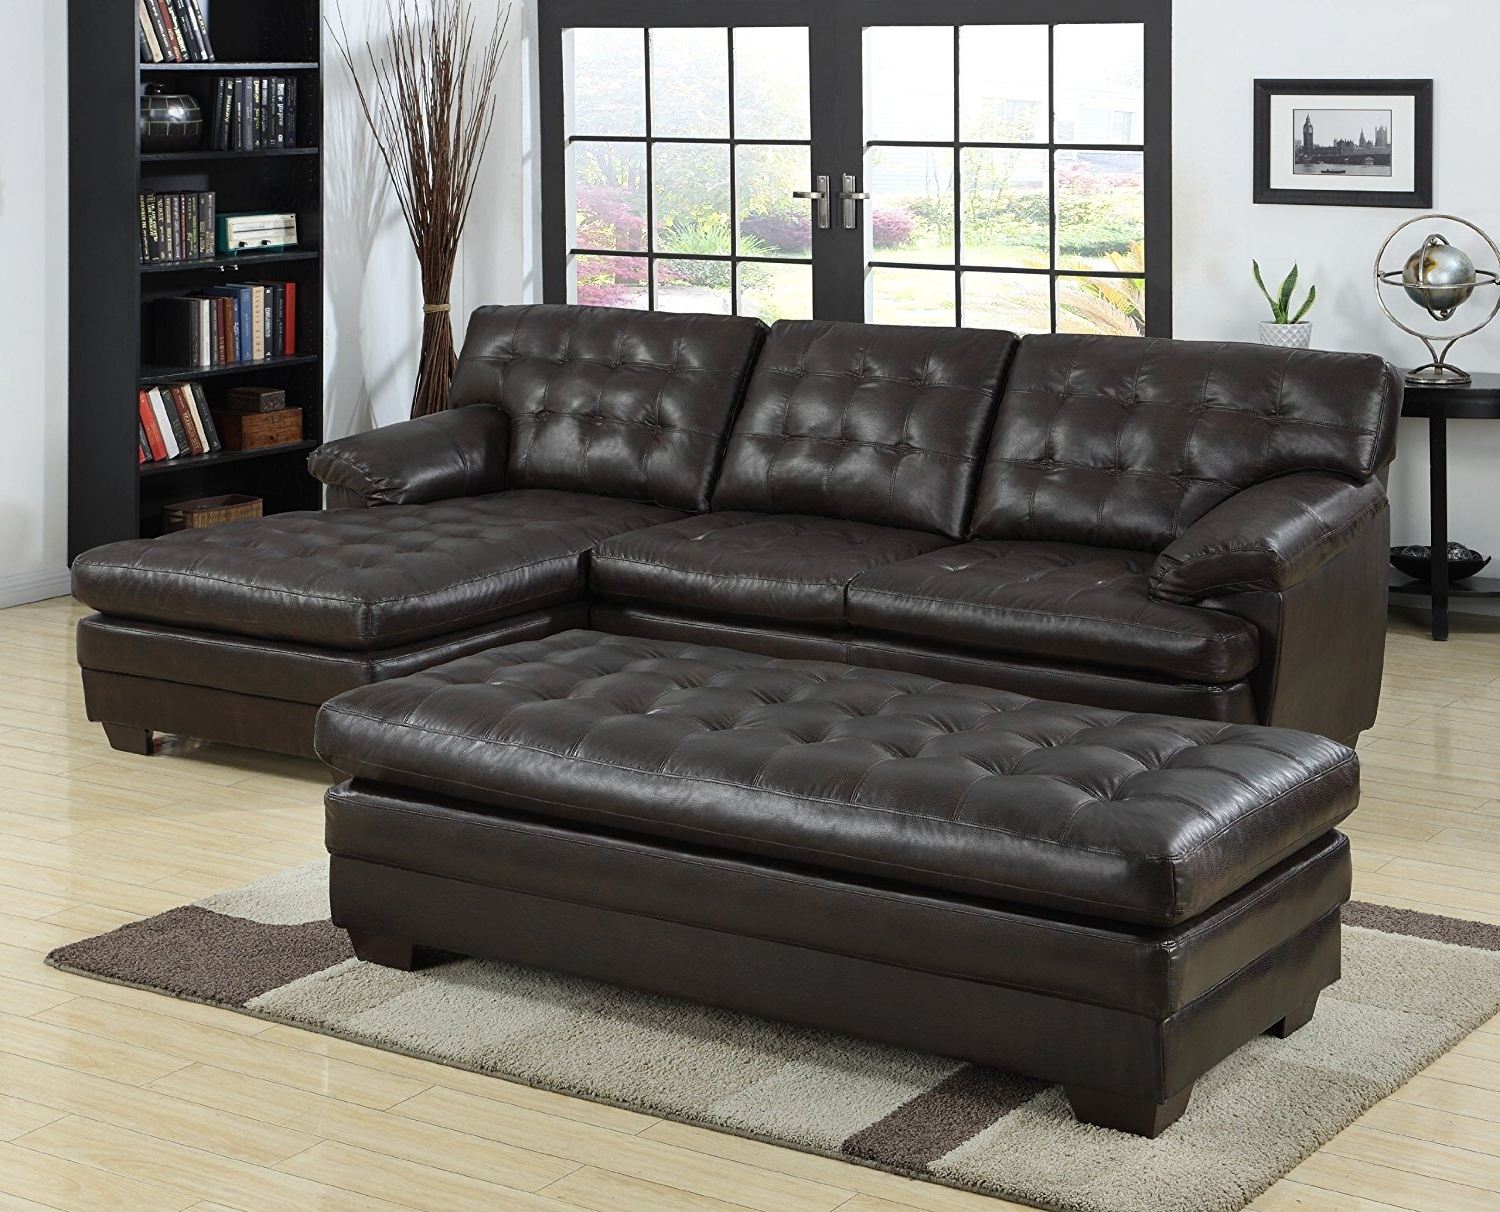 Amazon: Homelegance 9739 Channel Tufted 2 Piece Sectional Sofa Pertaining To Most Recently Released Couches With Chaise Lounge (View 2 of 15)